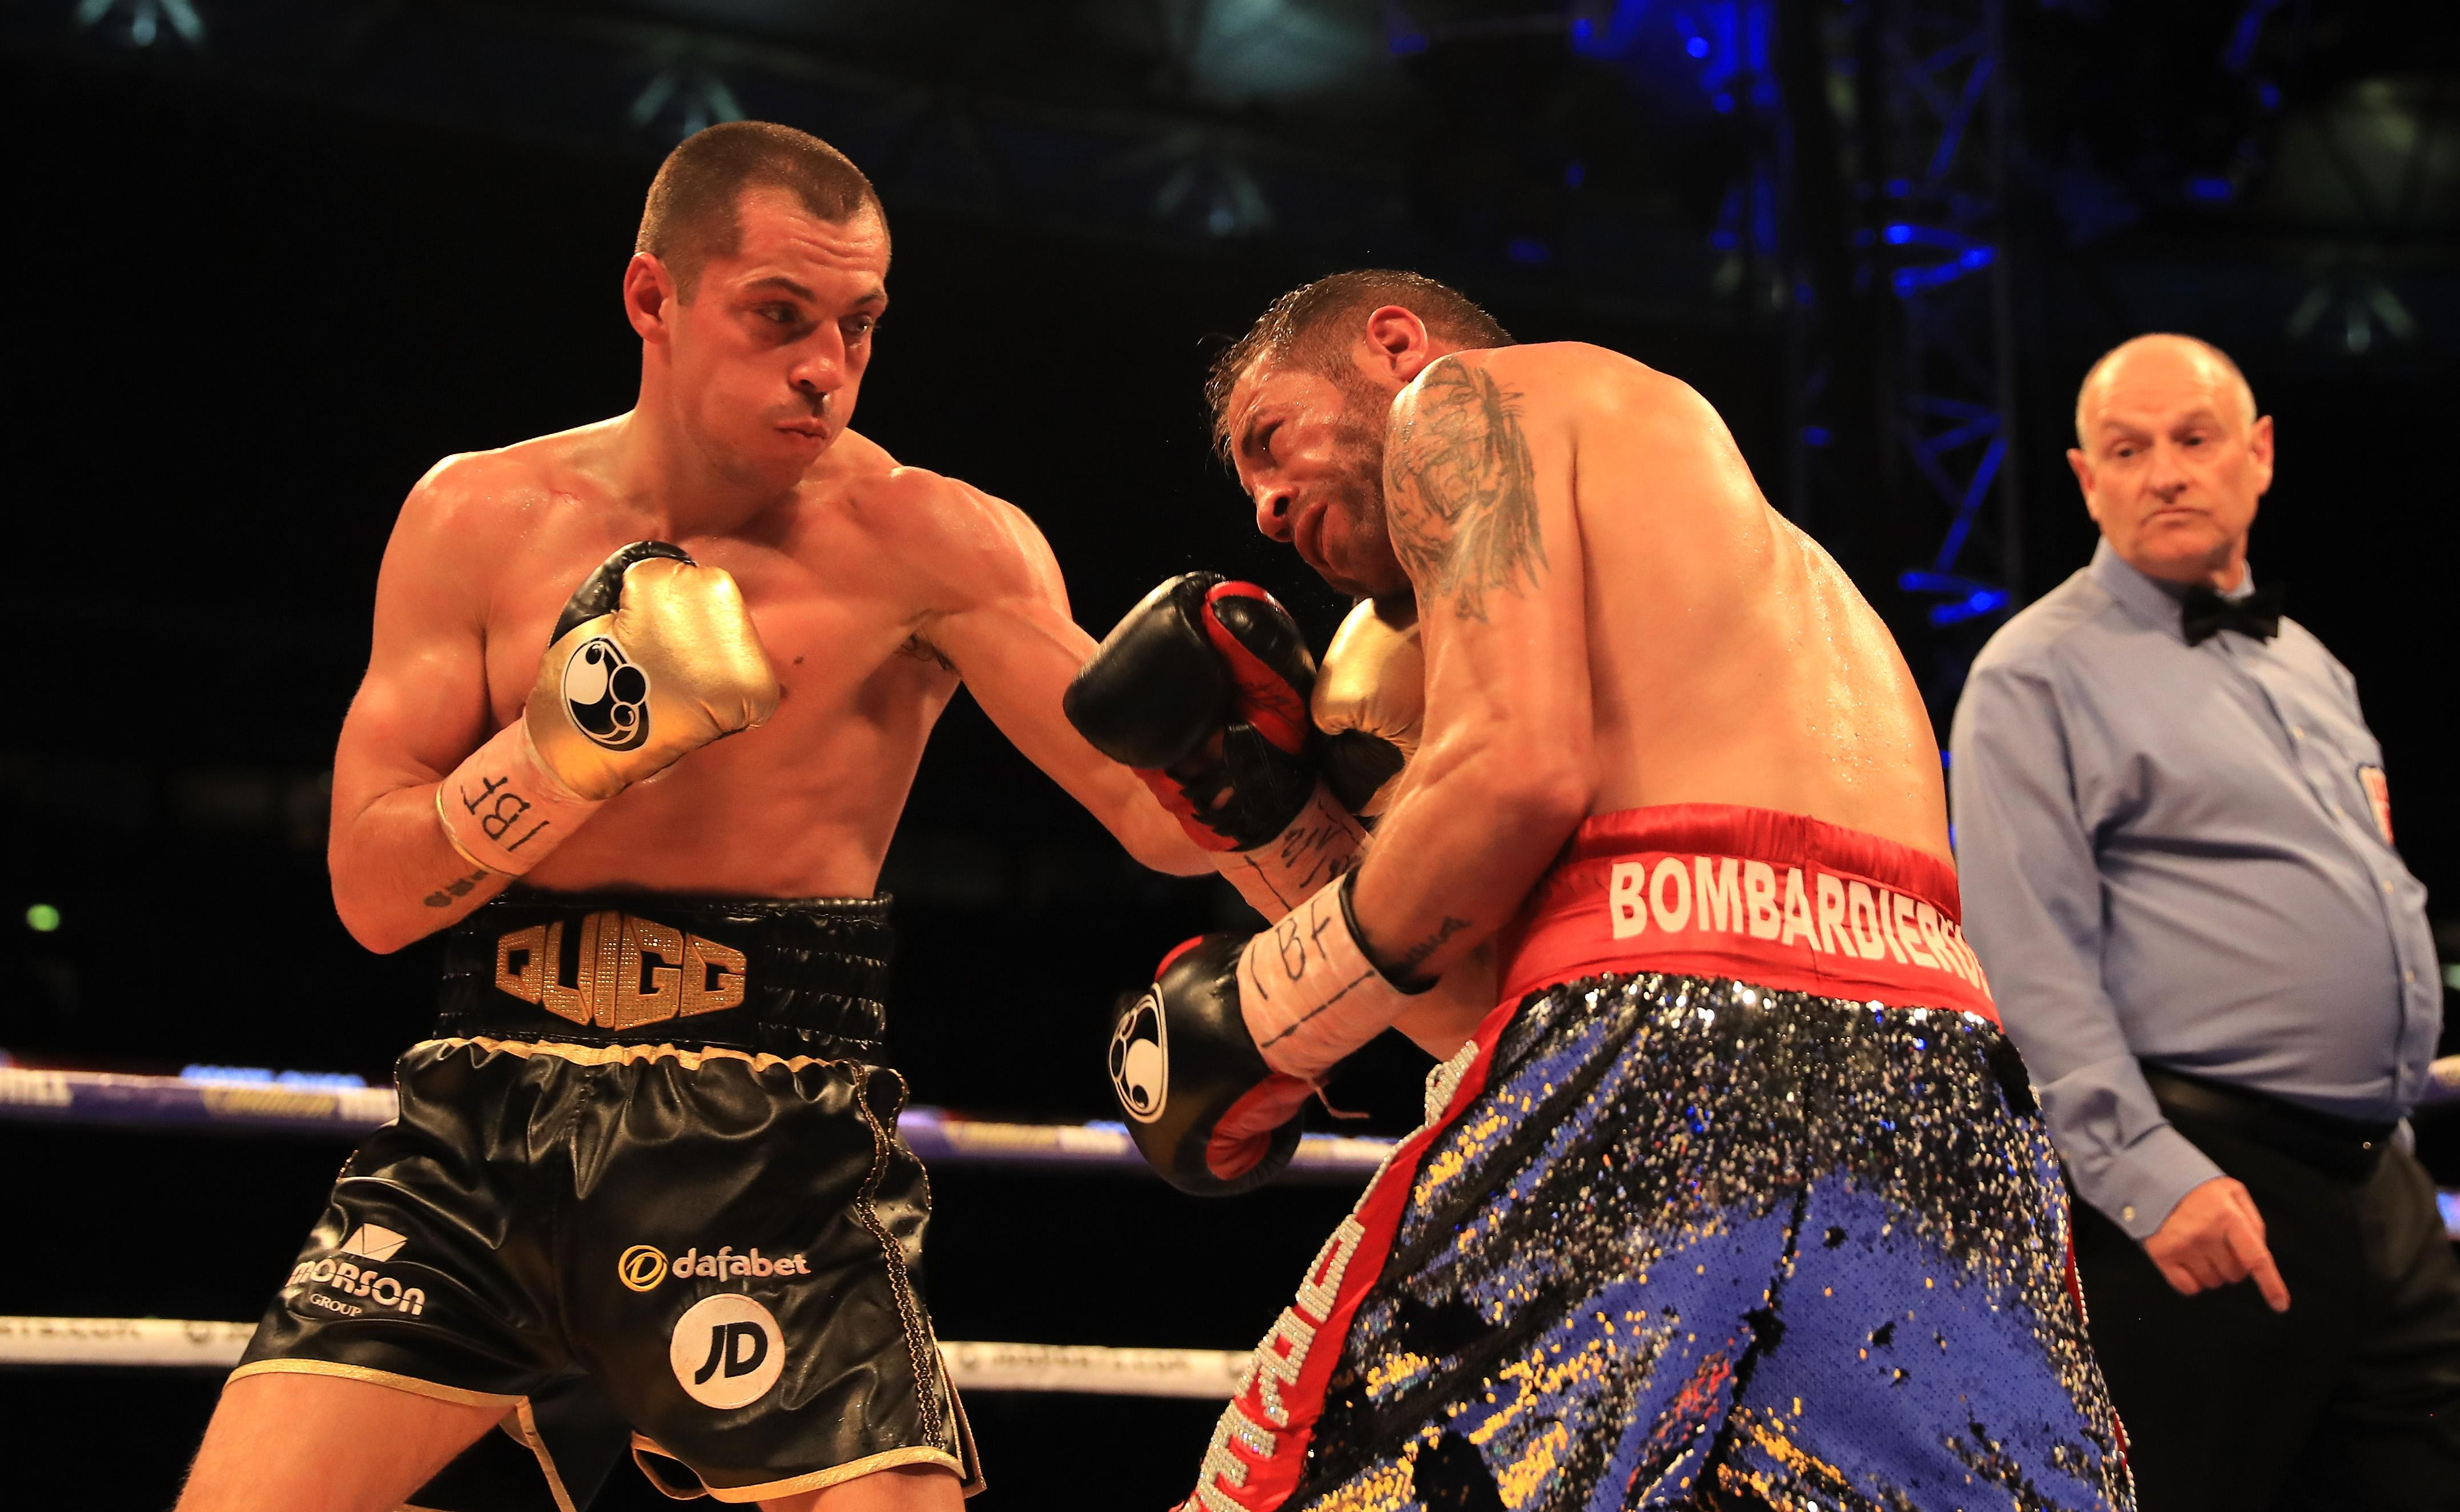 British puncher Scott Quigg came in 2.8lbs over the weight limit